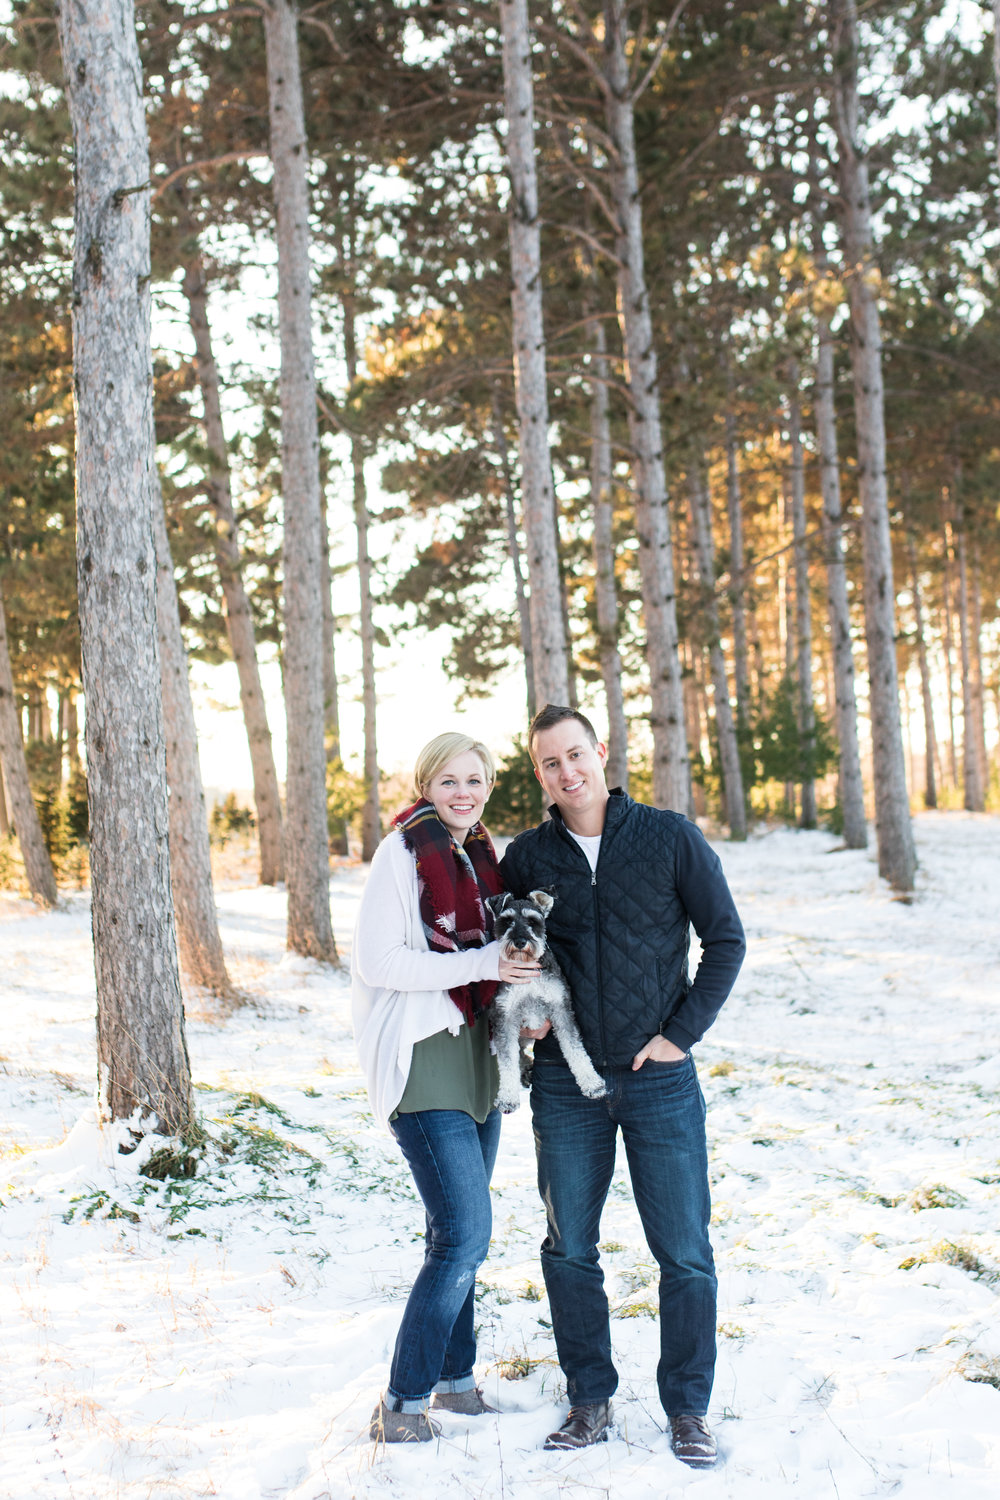 Nielsen Mini Session - Hansen Tree Farm -Sabrina Reis Photography - Minneapolis -16.jpg